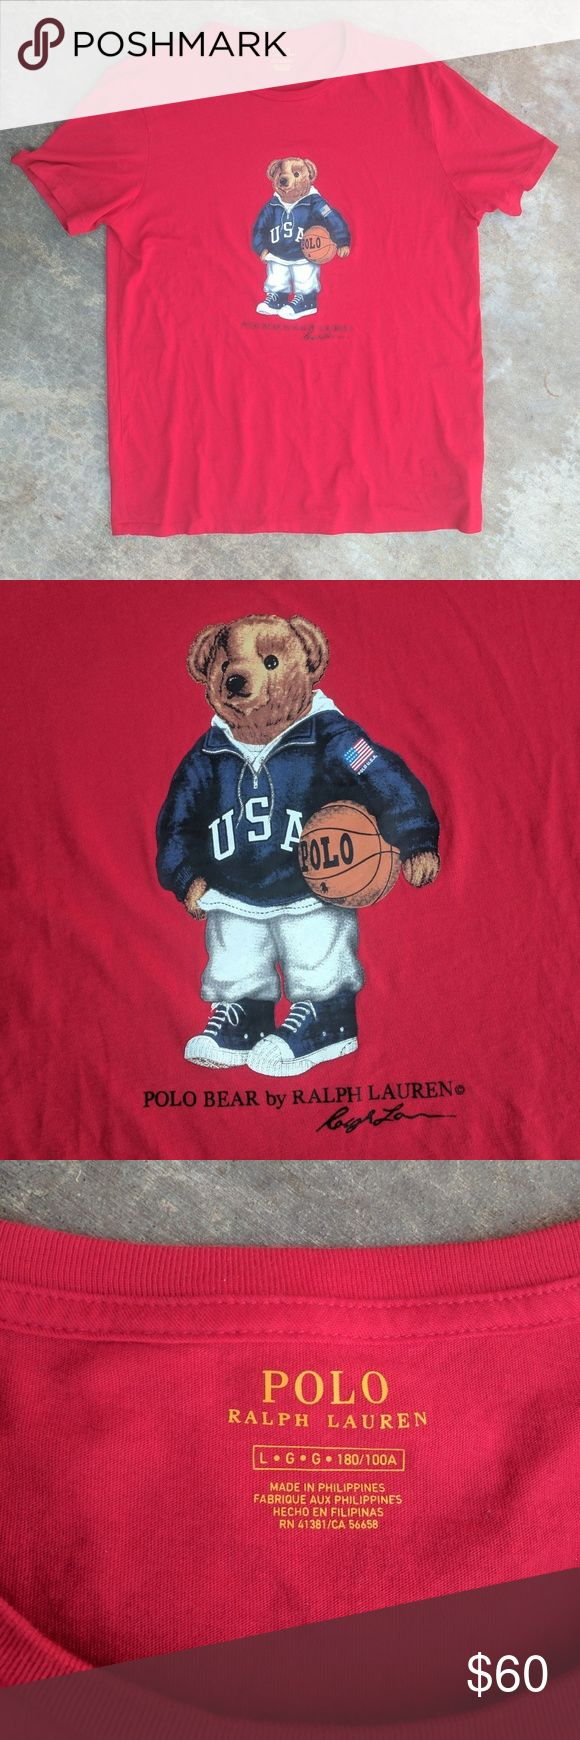 Basketball Polo Bear t-shirt Basketball Polo Bear t-shirt Size L  #polo #ralphlauren #polobear #basketball #nba #usa #america #polosport #polojeanco #tommyhilfiger #tommygirl #tommyjeans #guessjeans #supreme #palace #bape #nike #adidas Polo by Ralph Lauren Shirts Tees - Short Sleeve